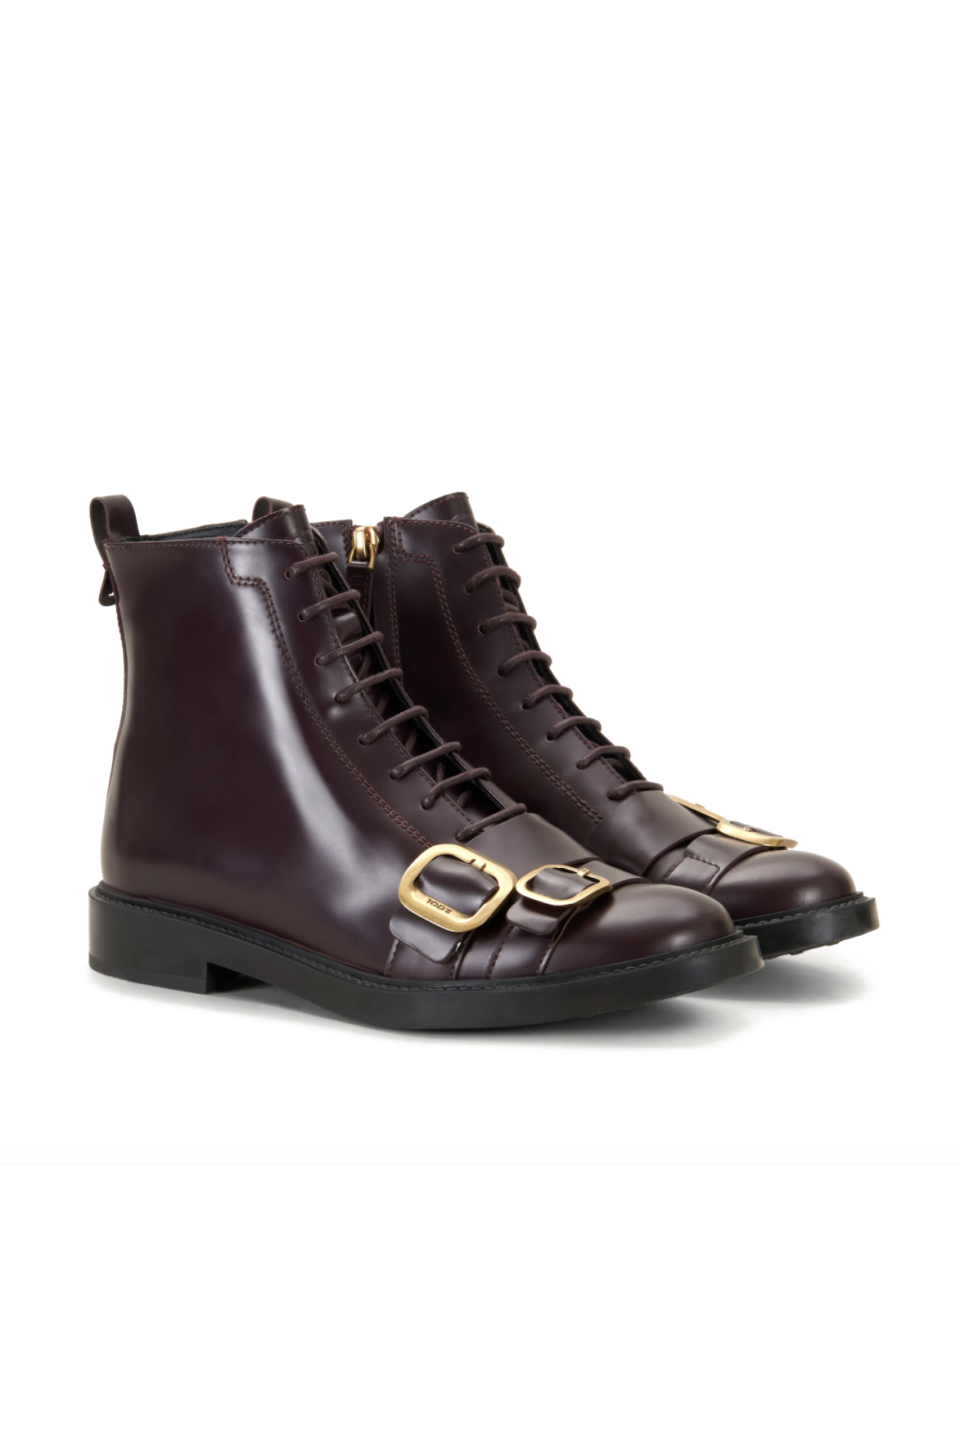 """<p><strong>Tod's</strong></p><p><strong>$895.00</strong></p><p><a href=""""https://go.redirectingat.com?id=74968X1596630&url=https%3A%2F%2Fwww.tods.com%2Fus-en%2FAnkle-Boots-in-Leather%2Fp%2FXXW59C0DL90OG9R817&sref=https%3A%2F%2Fwww.marieclaire.com%2Ffashion%2Fg33469548%2Fbest-ankle-boots-for-women%2F"""" rel=""""nofollow noopener"""" target=""""_blank"""" data-ylk=""""slk:SHOP IT"""" class=""""link rapid-noclick-resp"""">SHOP IT</a></p><p>For a rich color on your ankle boots, slip your foot into this burgundy option. It has an air of elegance thanks to the smooth leather finish and two polished buckle straps. <br></p>"""